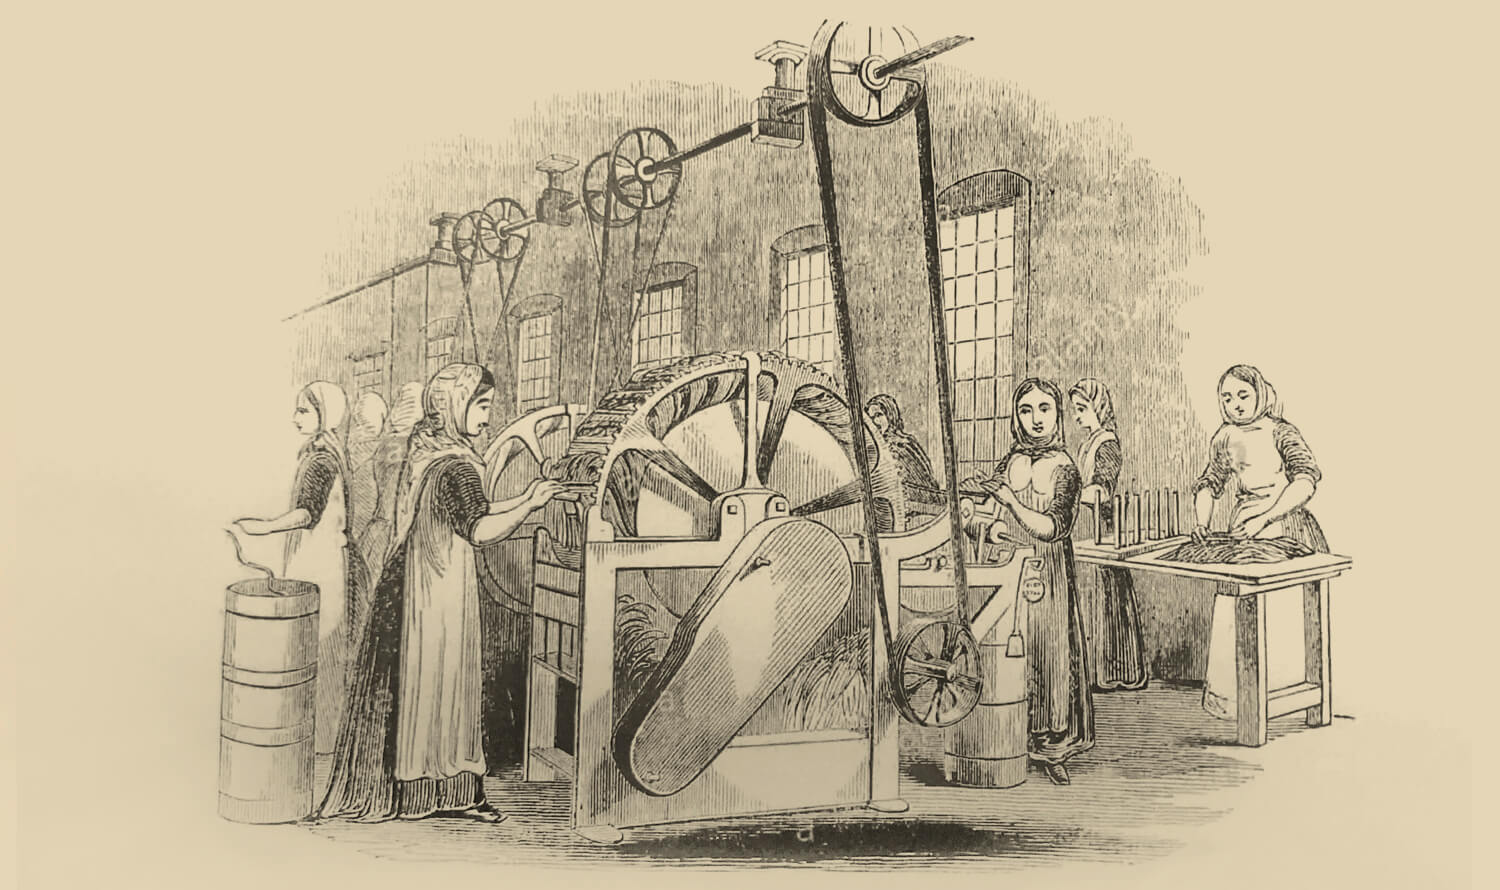 Castleton Mill's history: dyeing, weaving, scribbling & spinning